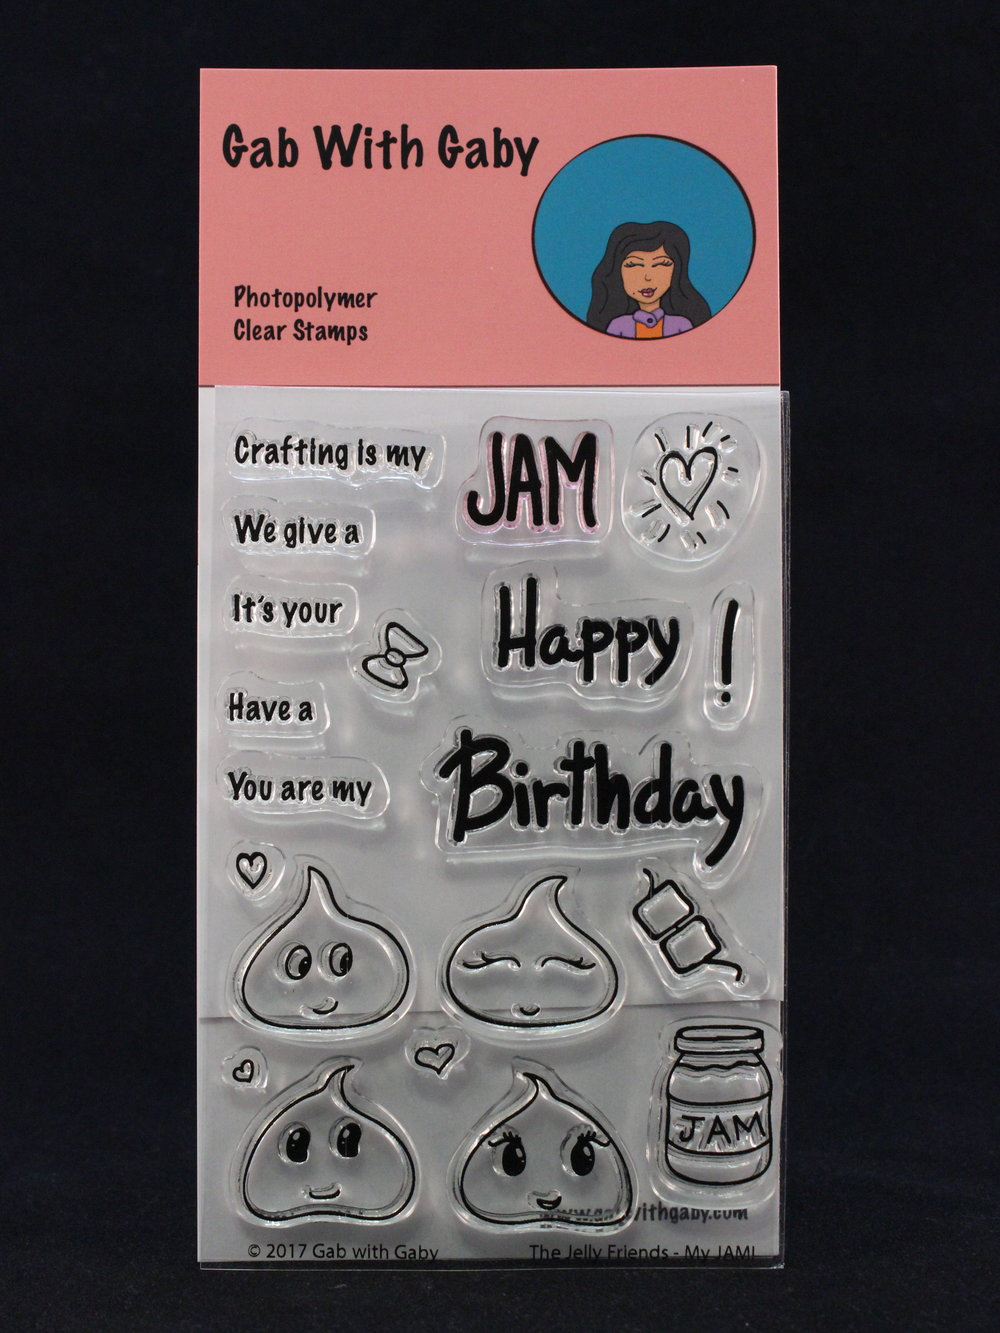 "These are the Jelly Friends, in their first stamp set -""My JAM!"" This set will let you wish someone a Happy Birthday or tell them they're your jam."